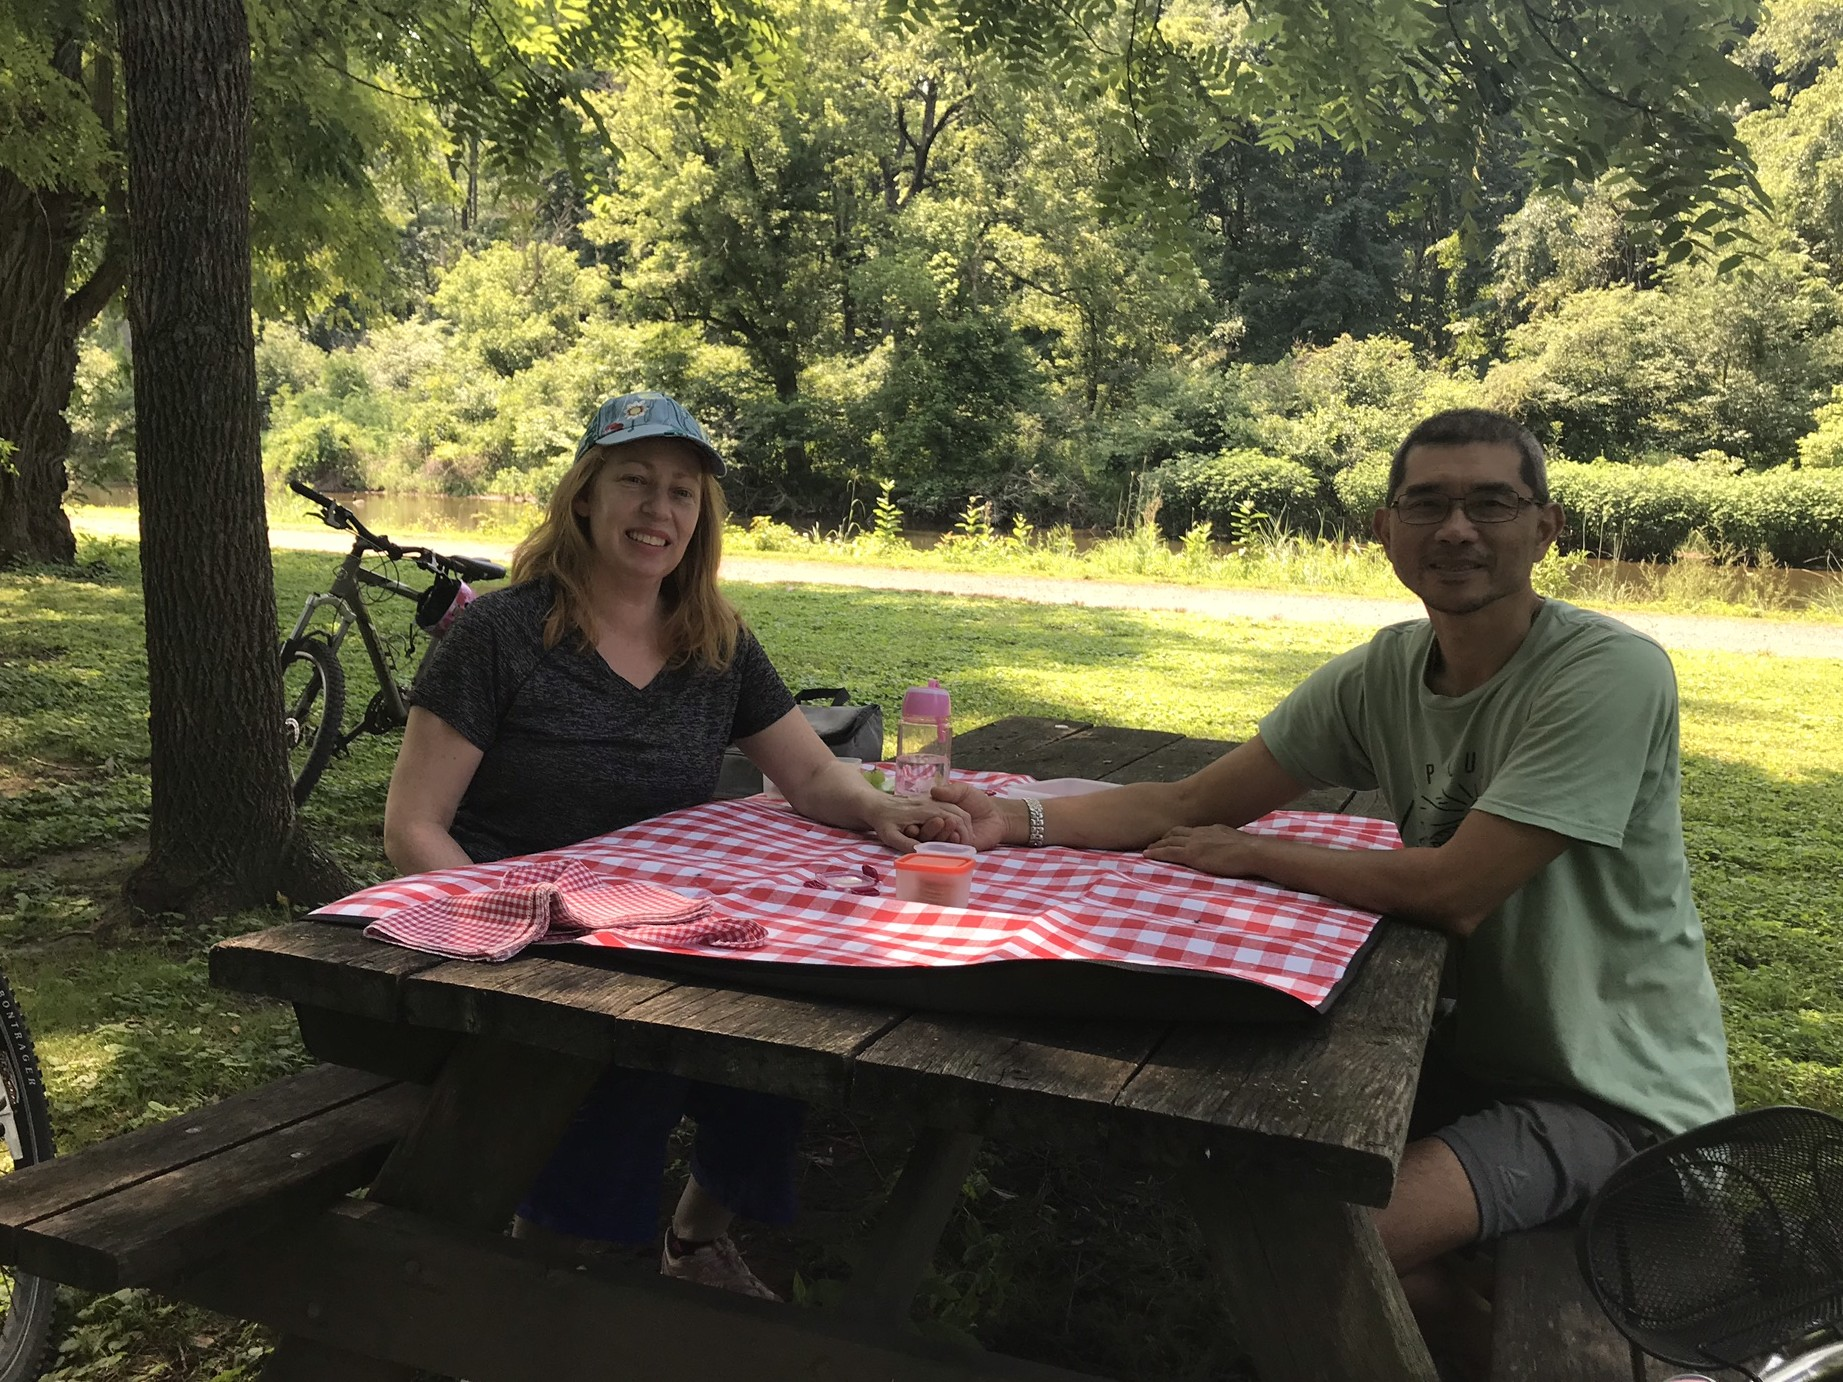 Lisa and mike at picnic table with a red white stripe tablecloth having a picnic and holding hands